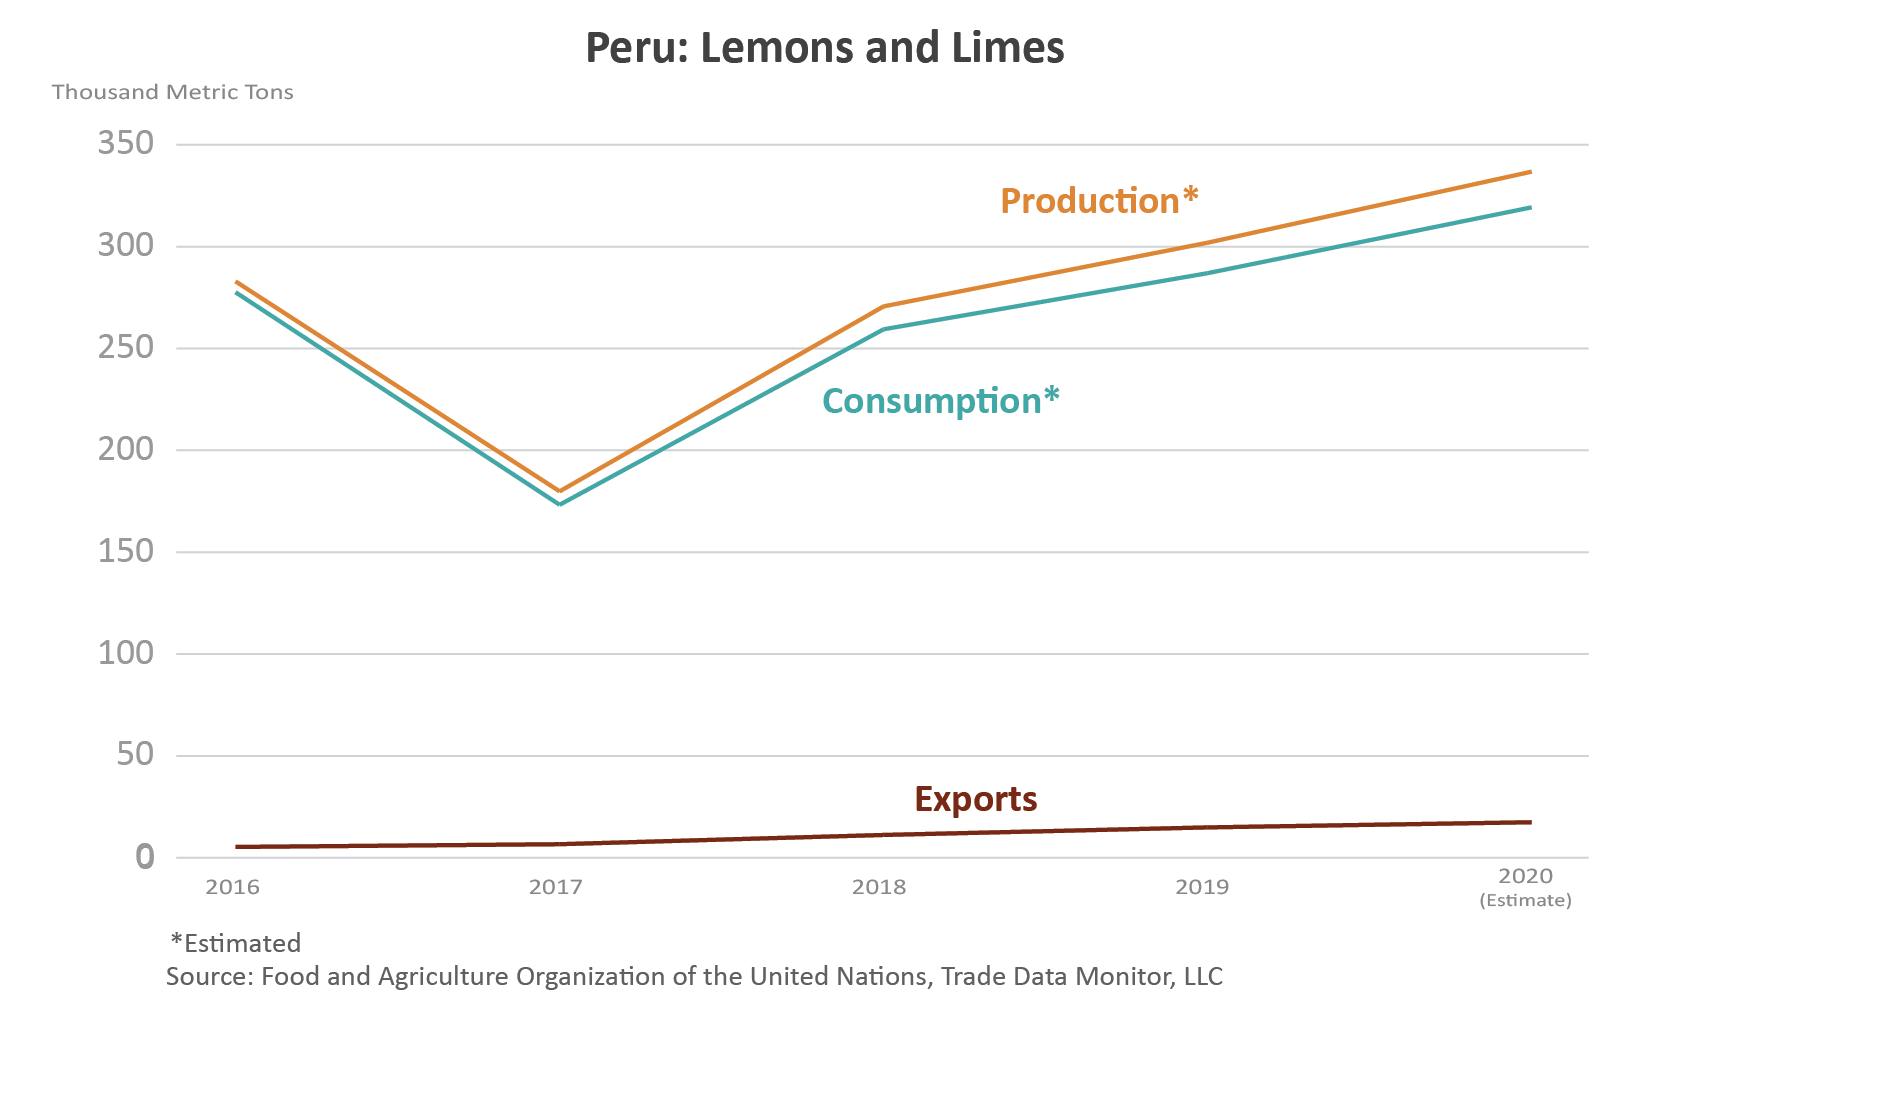 Line graph showings the volume of production, consumption, and exports, for Peru's lemons and limes